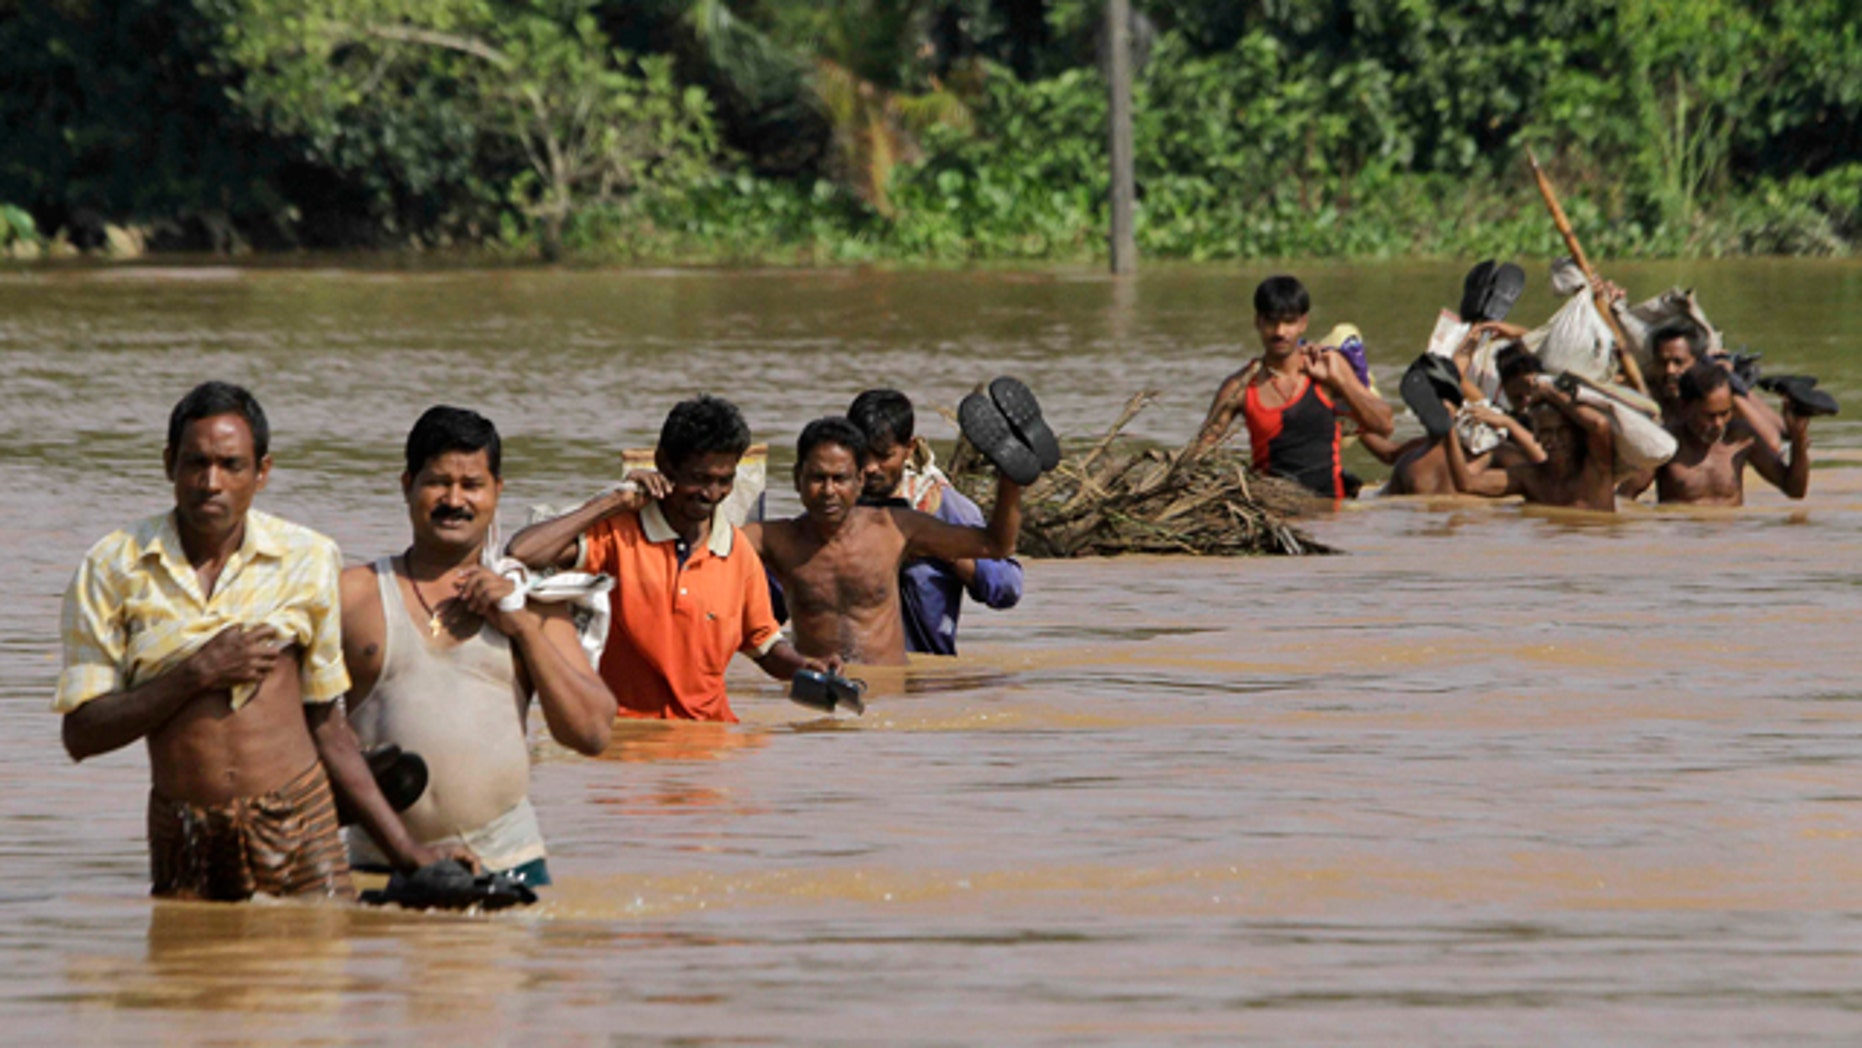 Sept. 28: Villagers ford floodwaters at Patamundi near Kendrapara, about 75 miles north of Bhubaneshwar, India.